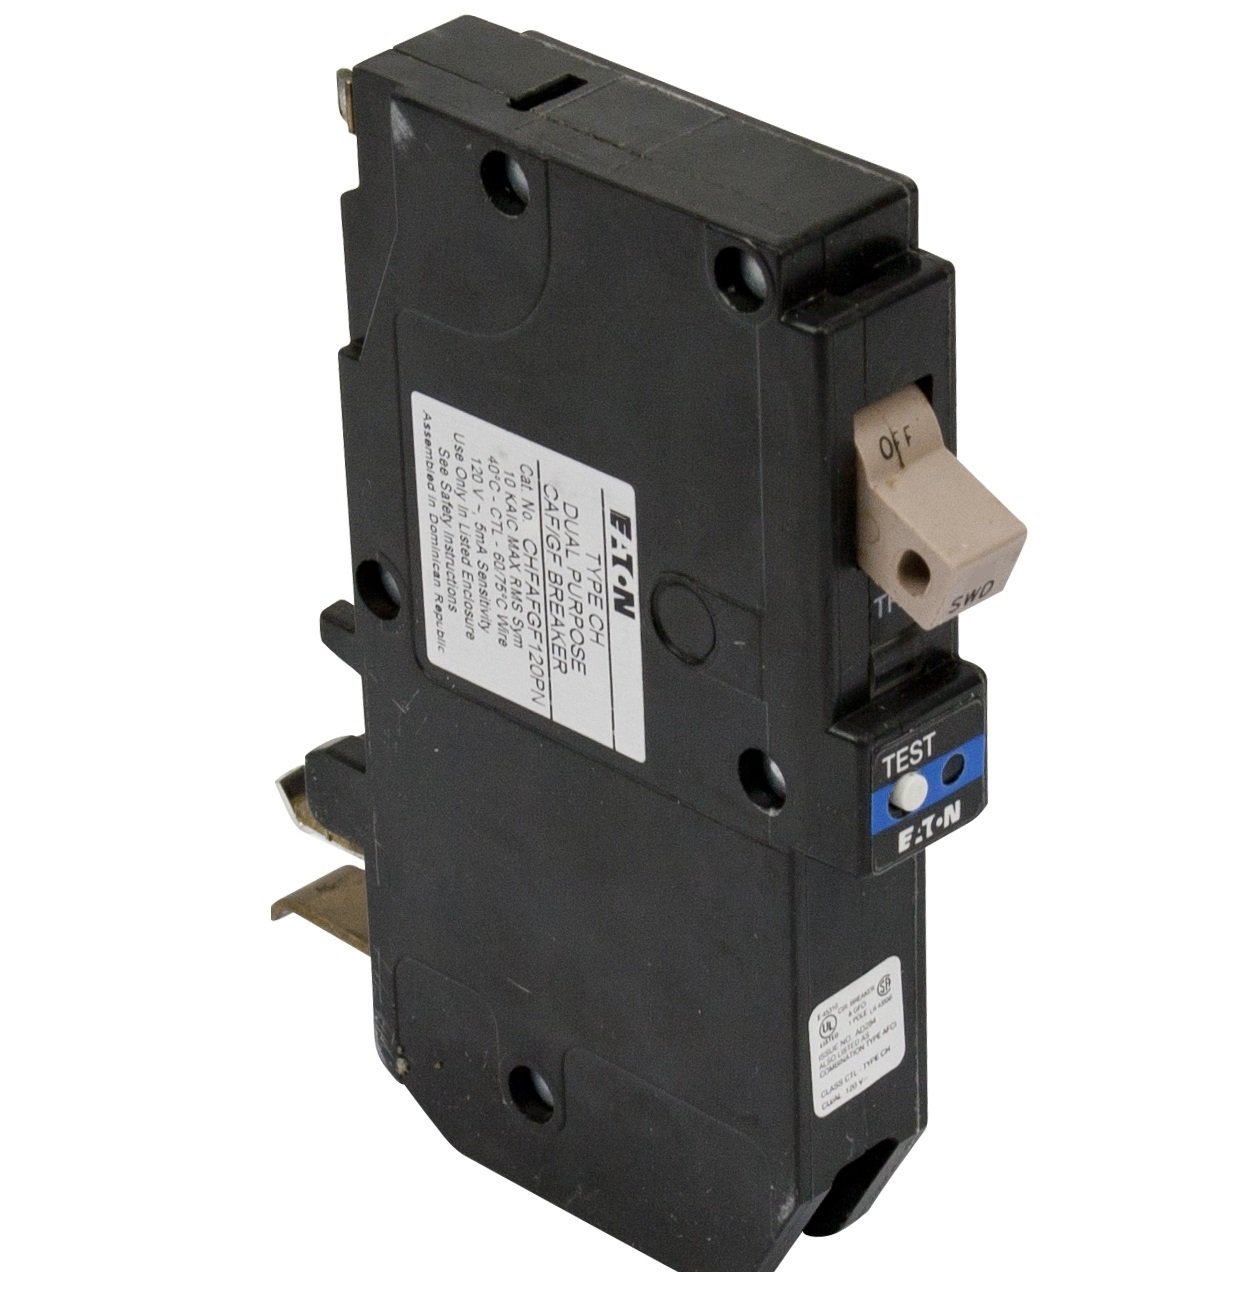 NEW Eaton//Cutler Hammer CHFCAF120  20A Type CH Combination AFCI Circuit Breaker